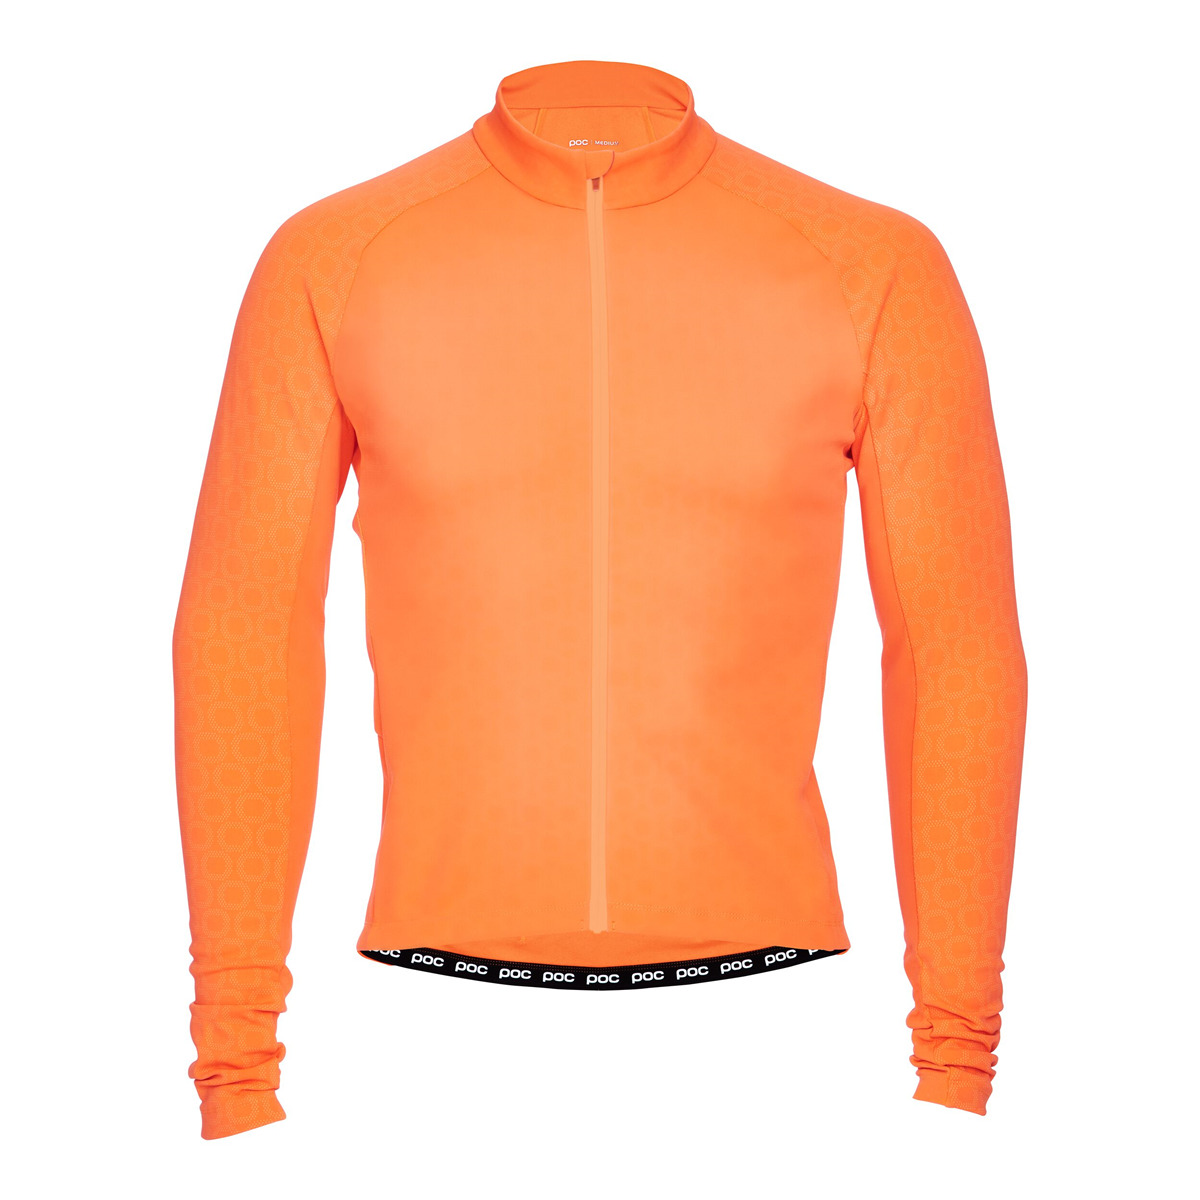 POC AVIP Ceramic Thermal Jersey